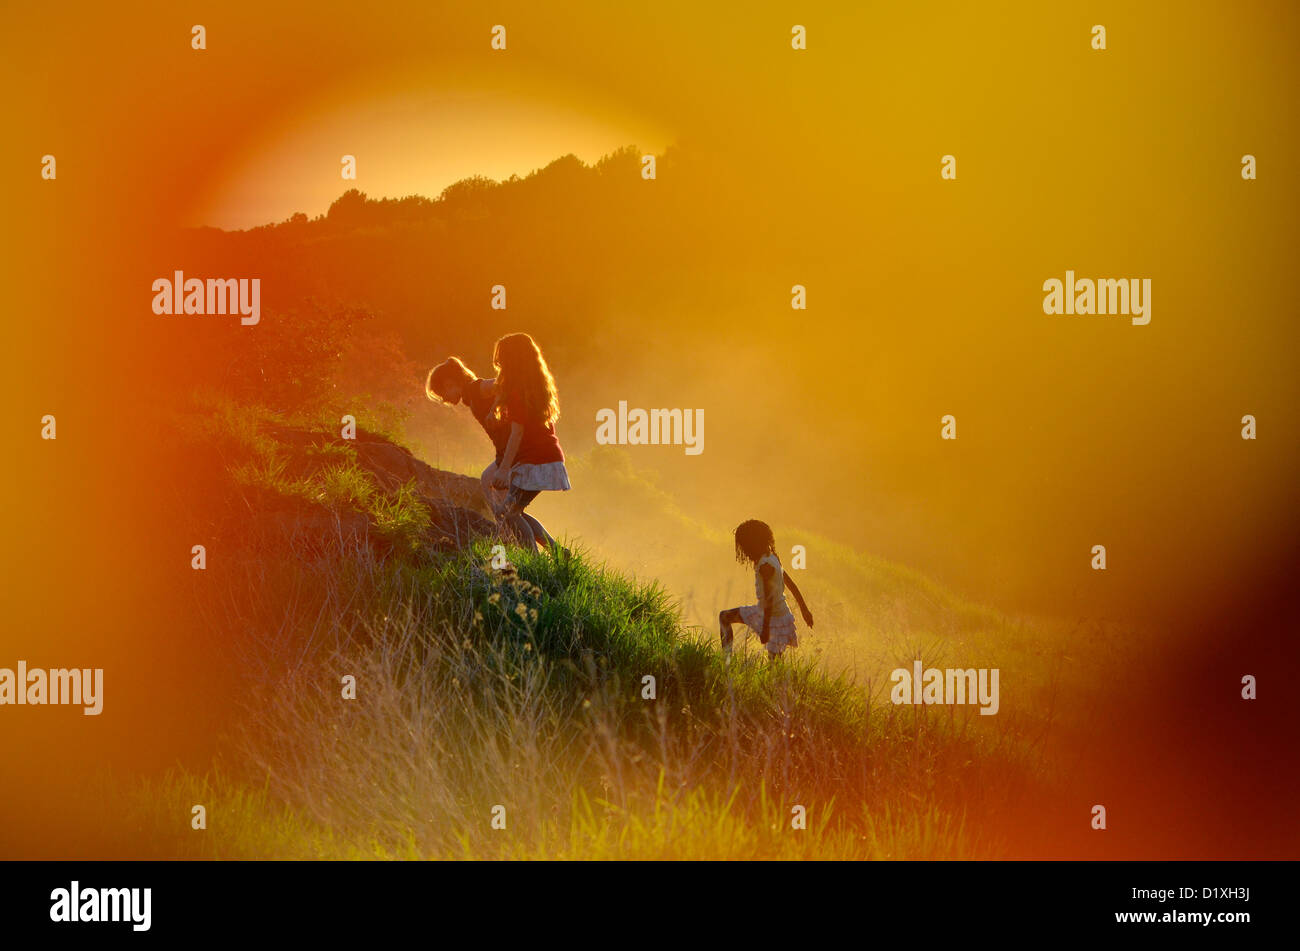 Three girls playing in fields with bright orange glow all around. Mood shot. Western Cape, South Africa - Stock Image